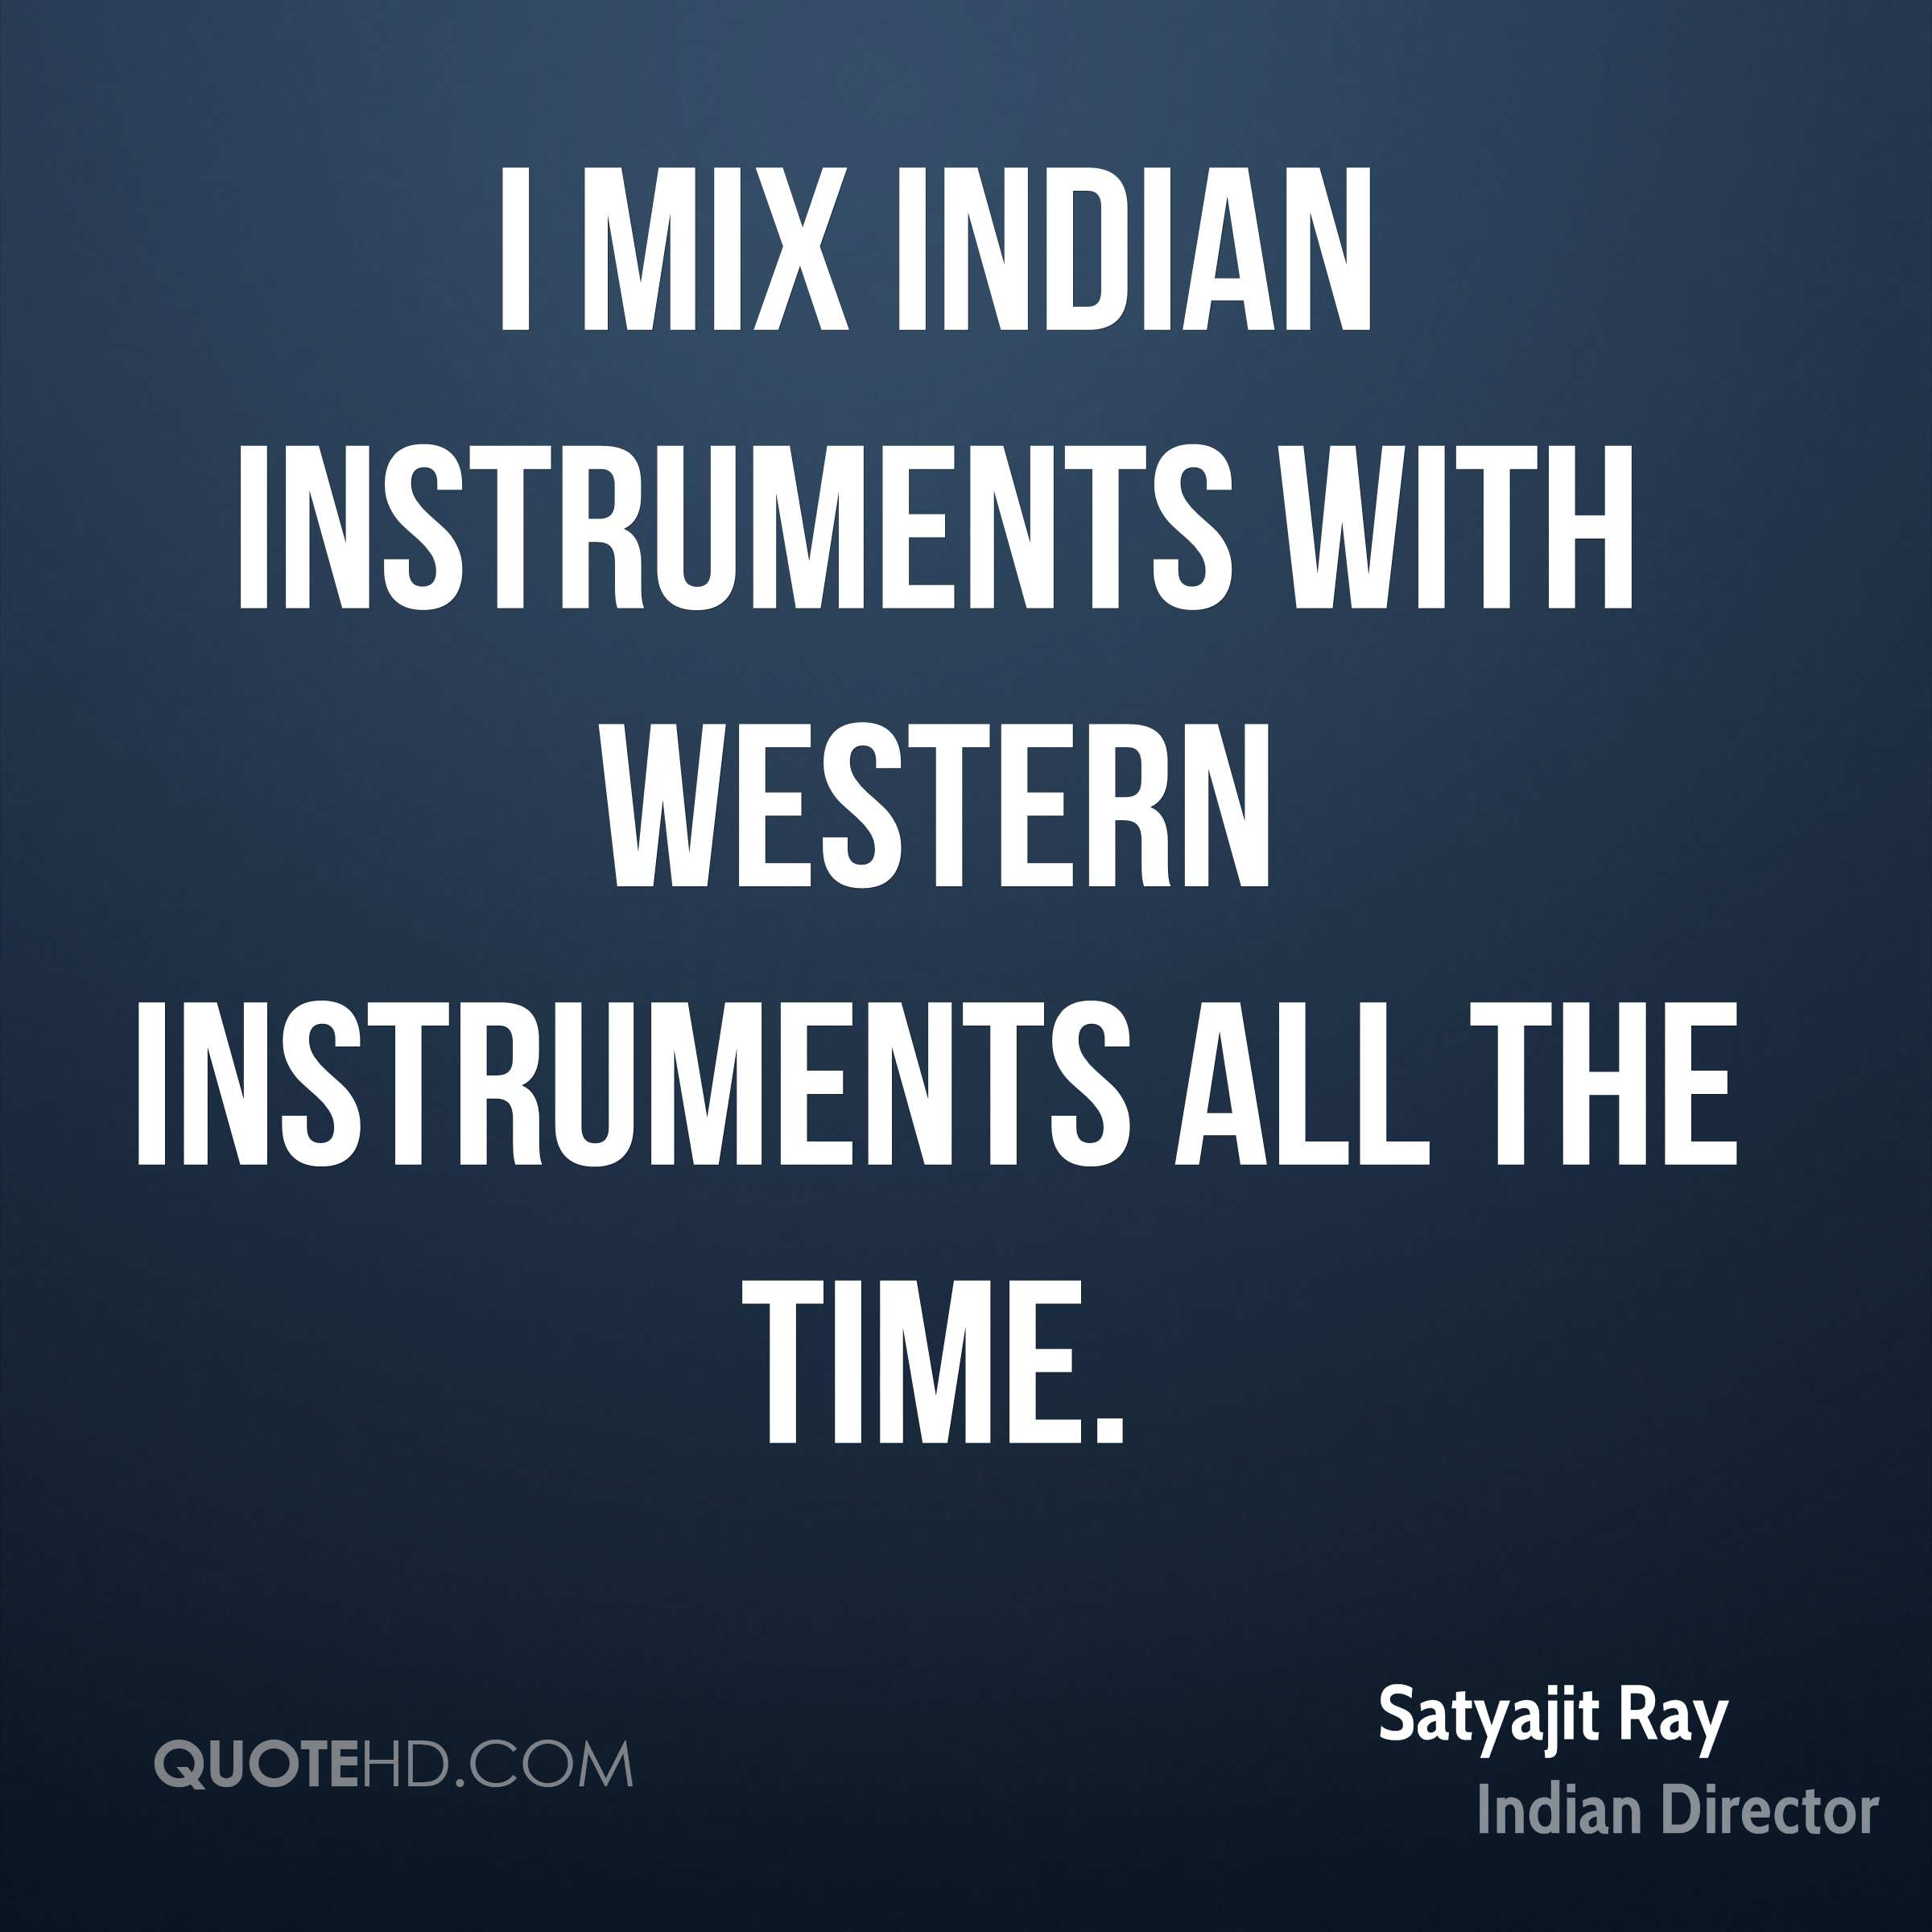 I mix Indian instruments with Western instruments all the time.